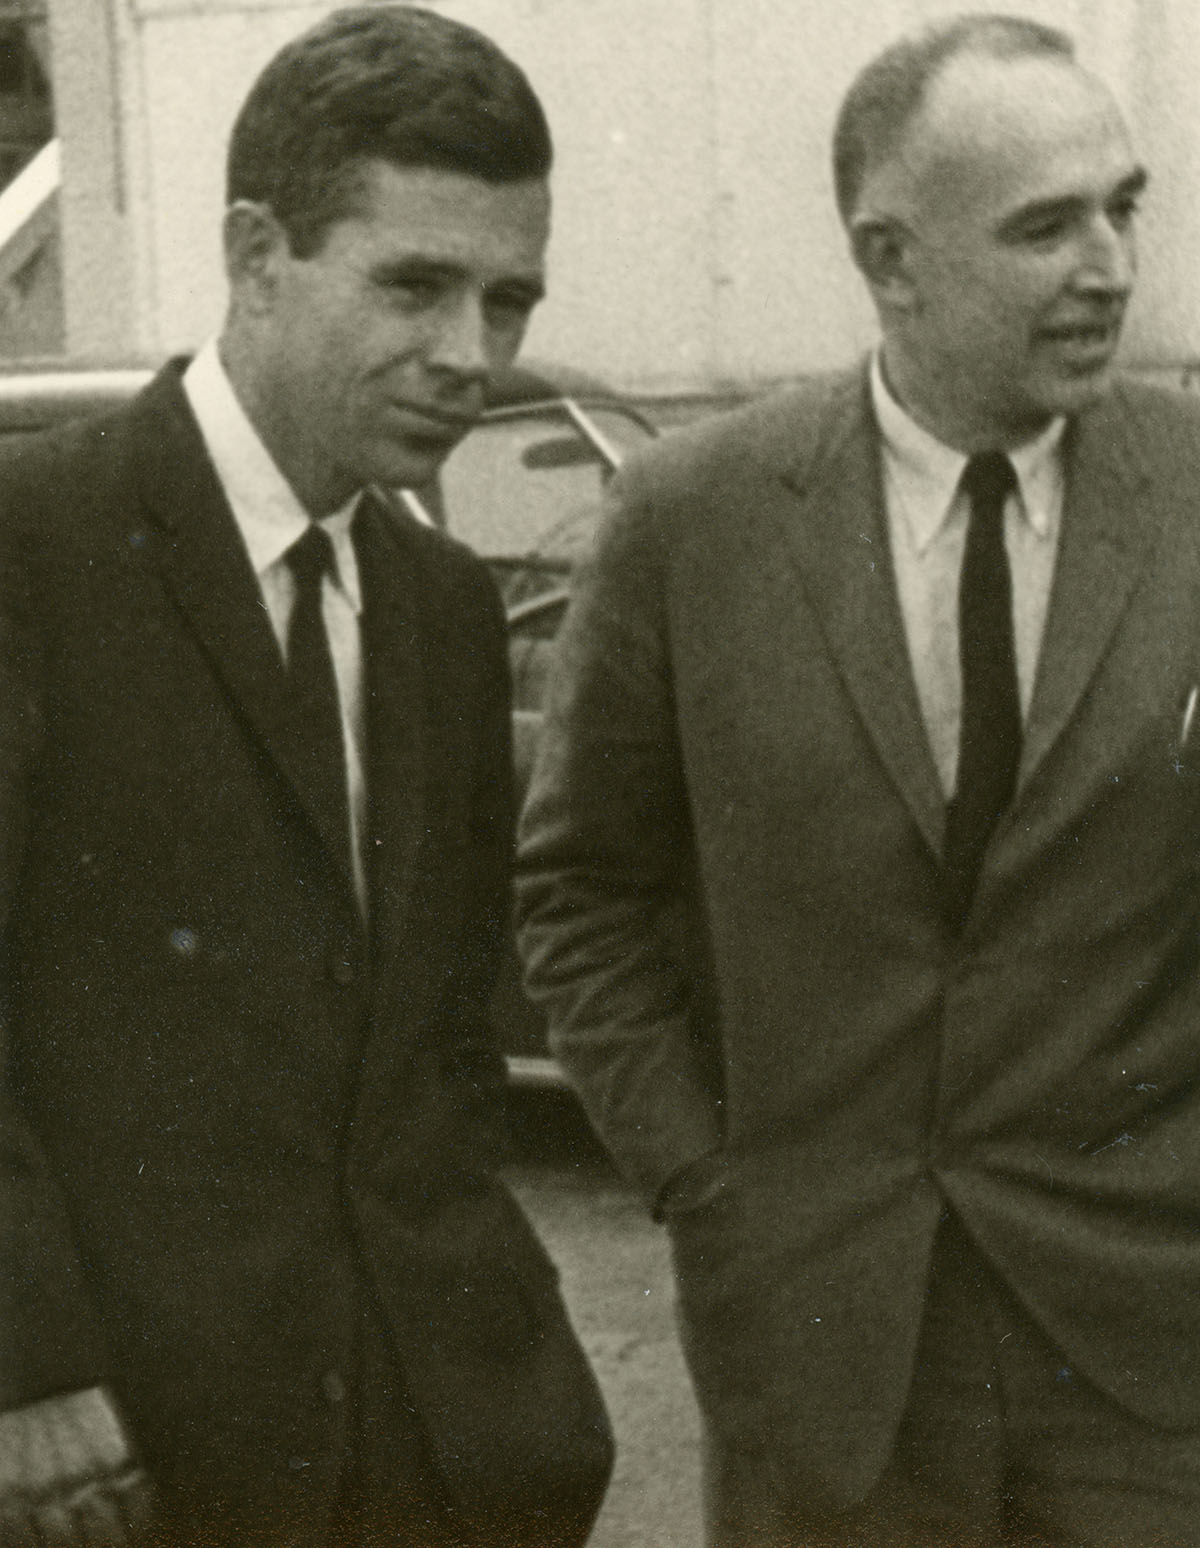 Edwin Floyd and Donald Spencer